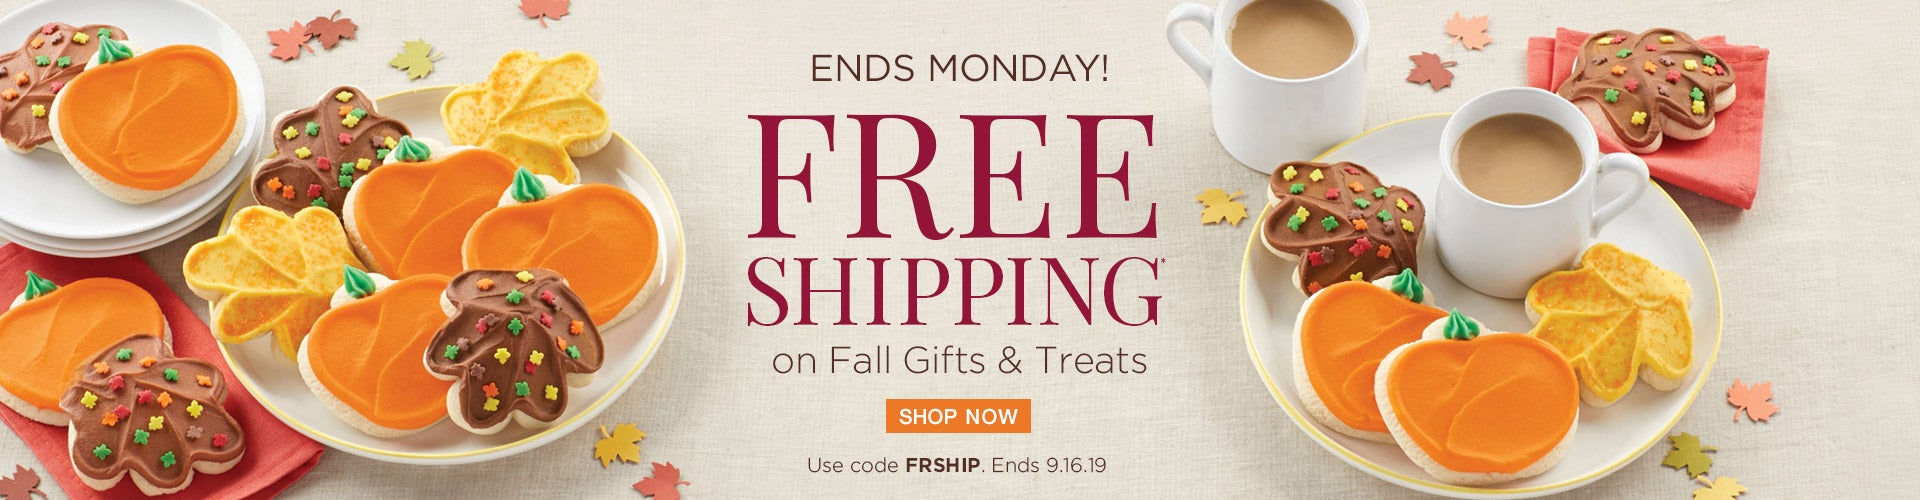 Free Shipping on Fall Gifts